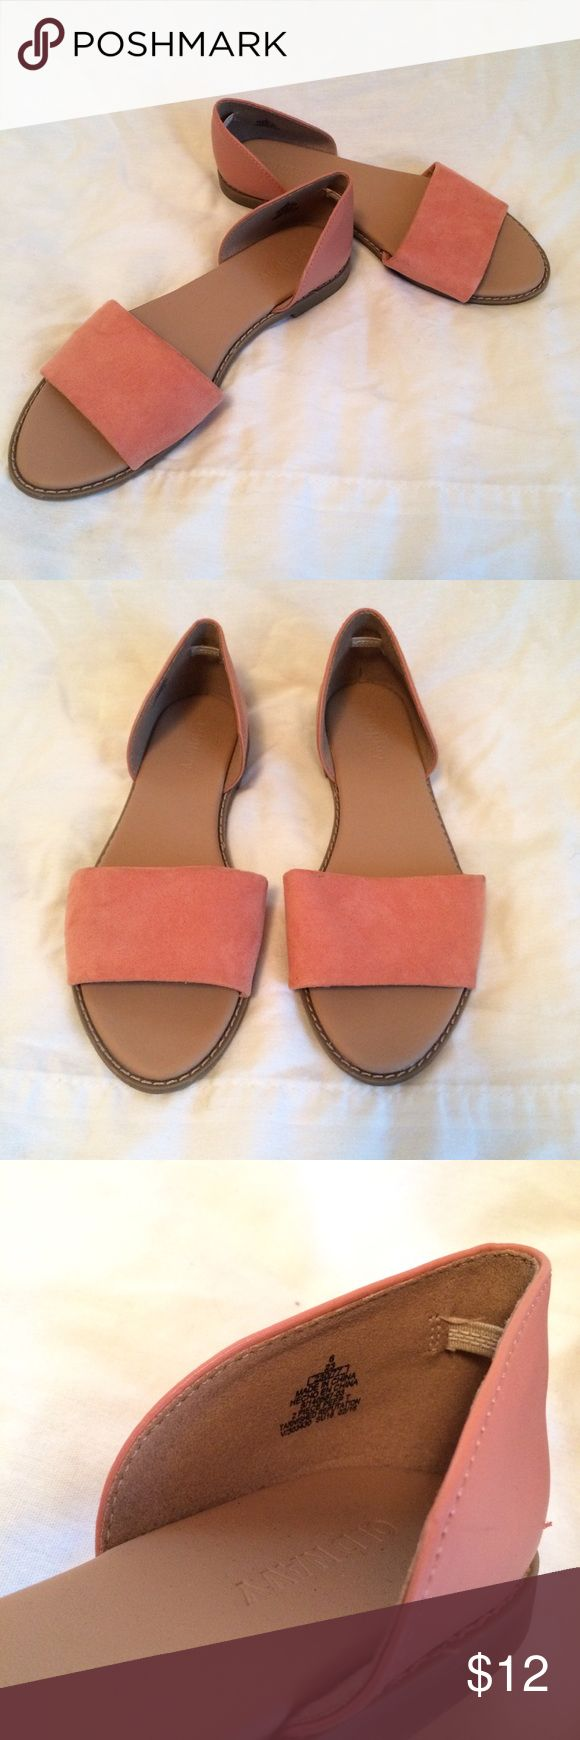 Old Navy Sandals Suede on the front leather on the back. Coral color. Old Navy Shoes Sandals